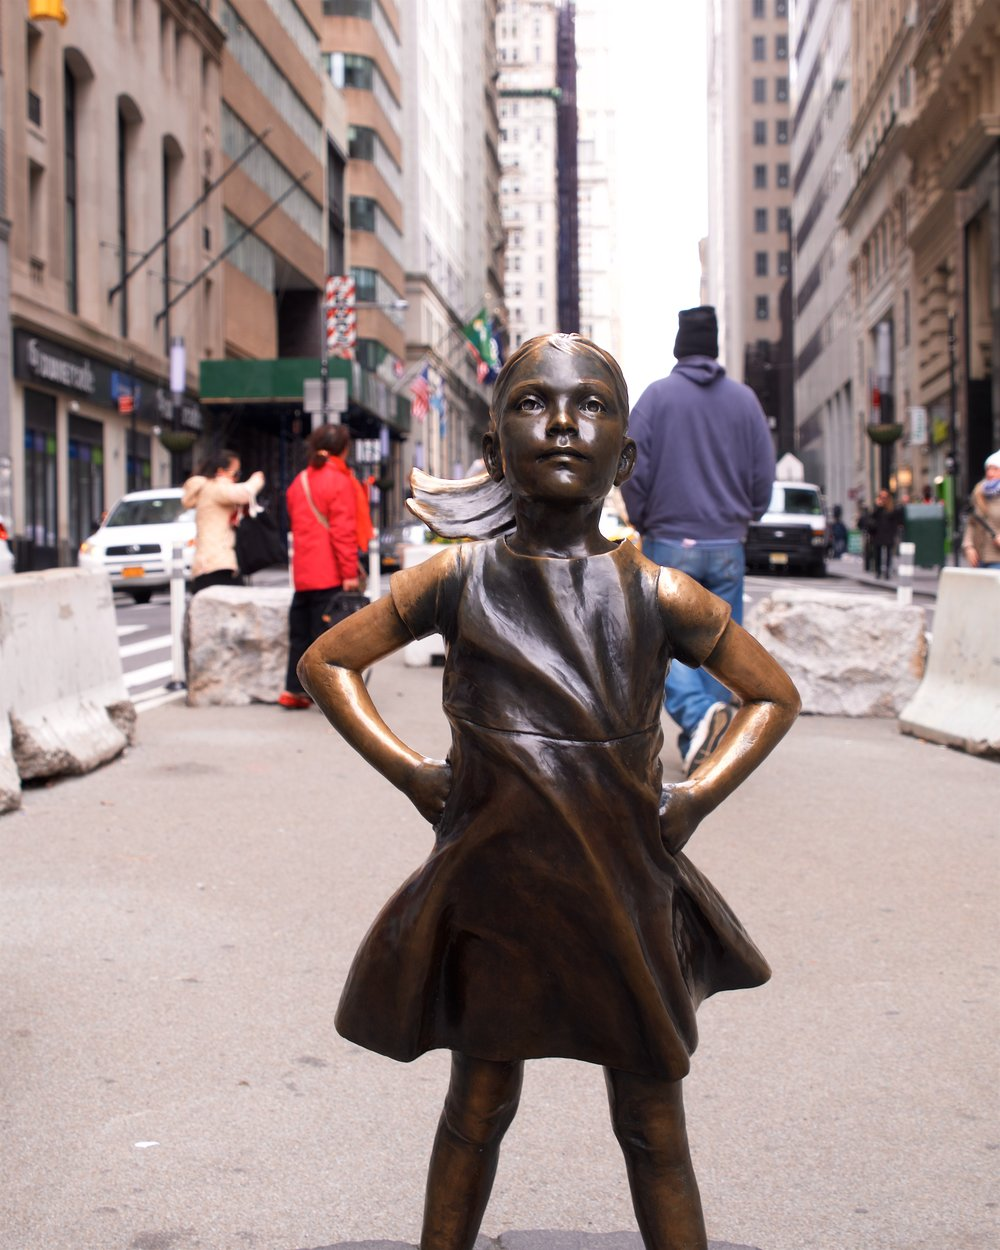 The fraction of a second where no one was standing next to Fearless Girl